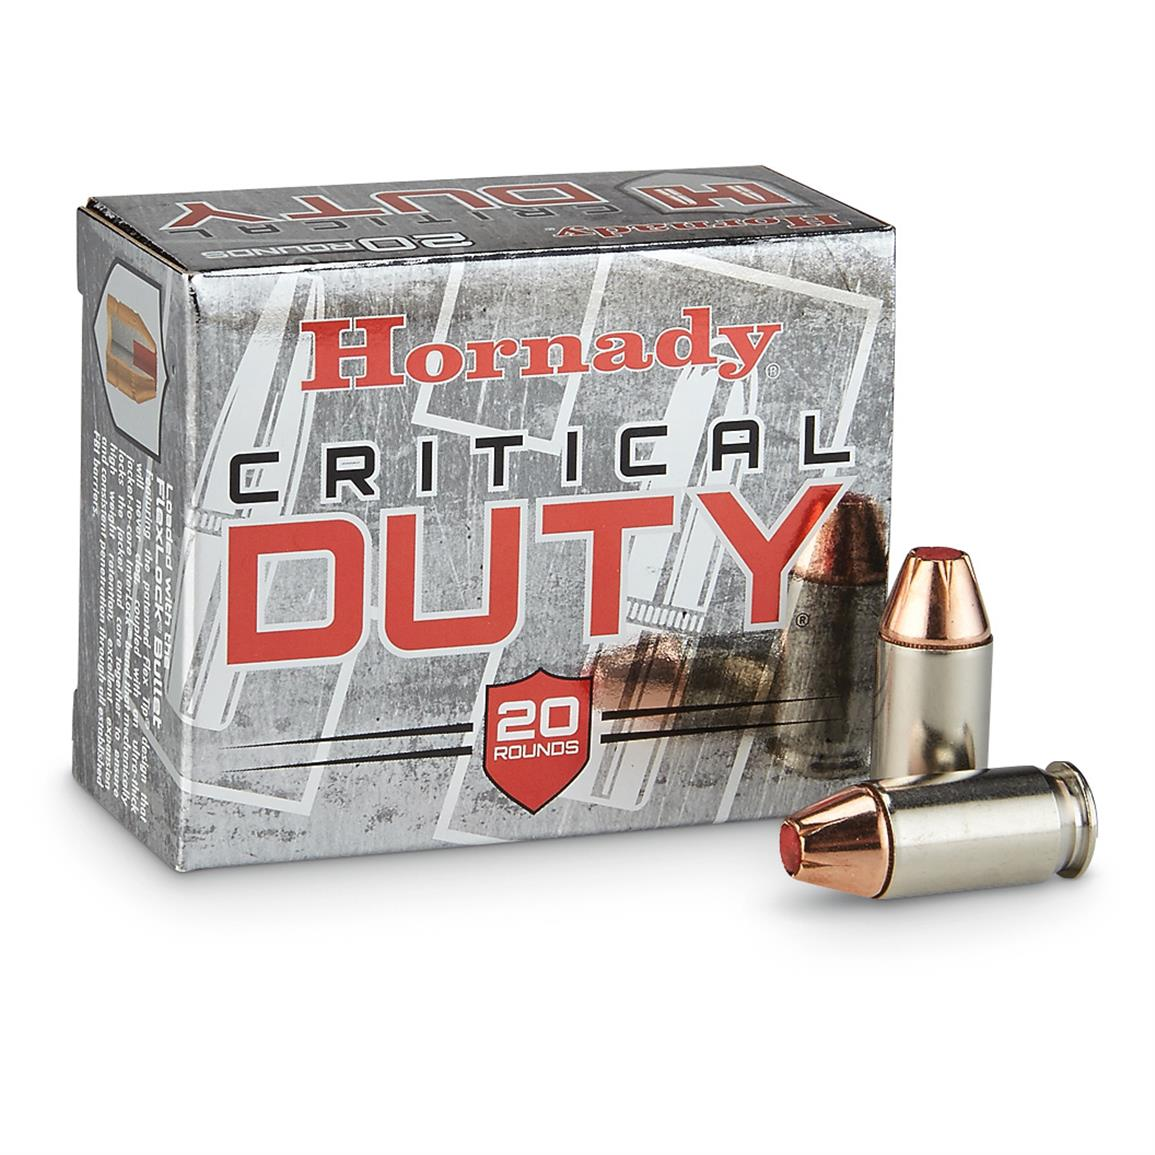 Hornady Critical Duty FlexLock .45 Auto +P Critical 220 Grain Ammo, 20 rounds, Box photoed is for illustrative purposes only, offer is for Hornady .45 Auto +P Critical Duty